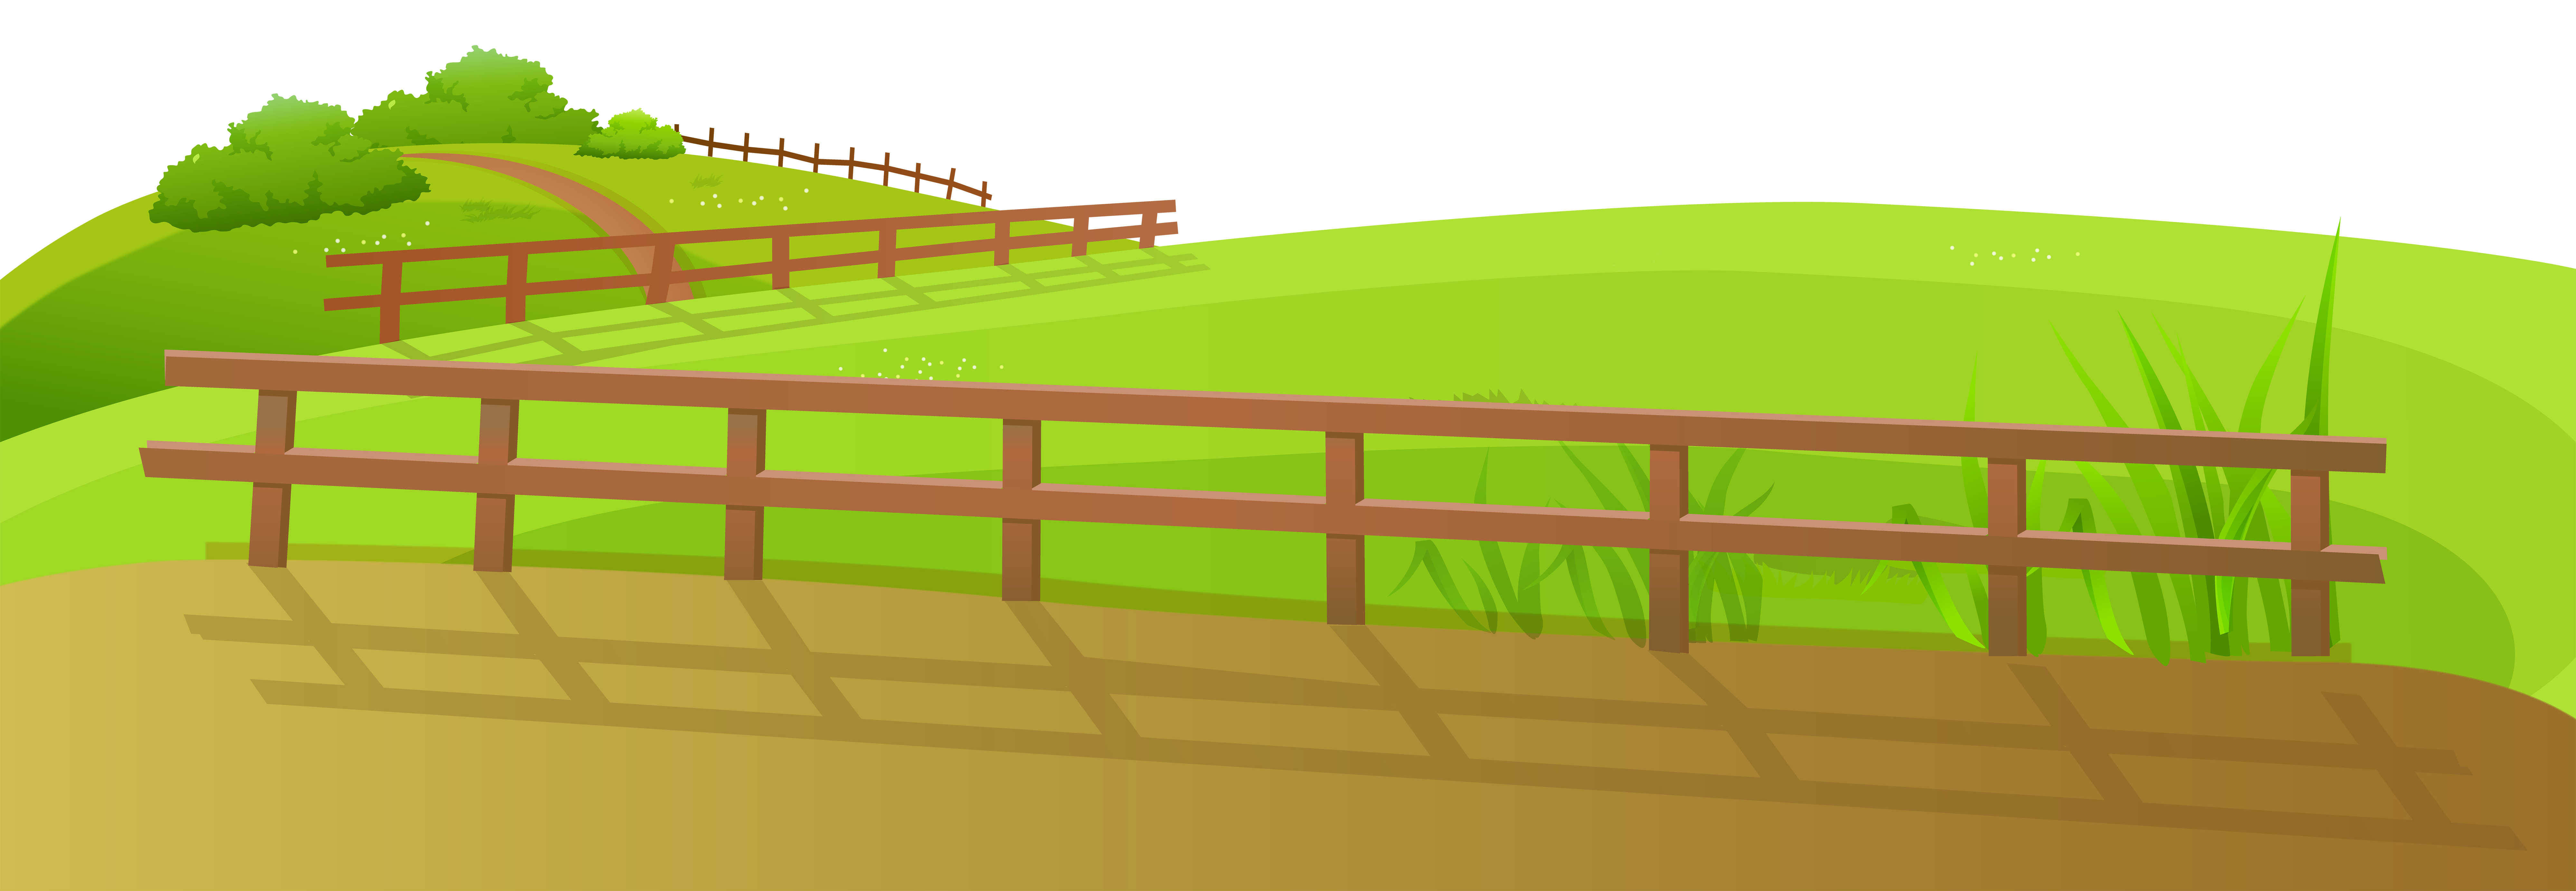 Grass Ground With Fence Png Clip Art Image Gallery Yopriceville High Quality Images And Transparent Png Free Clipart Art Images Clip Art Free Clip Art